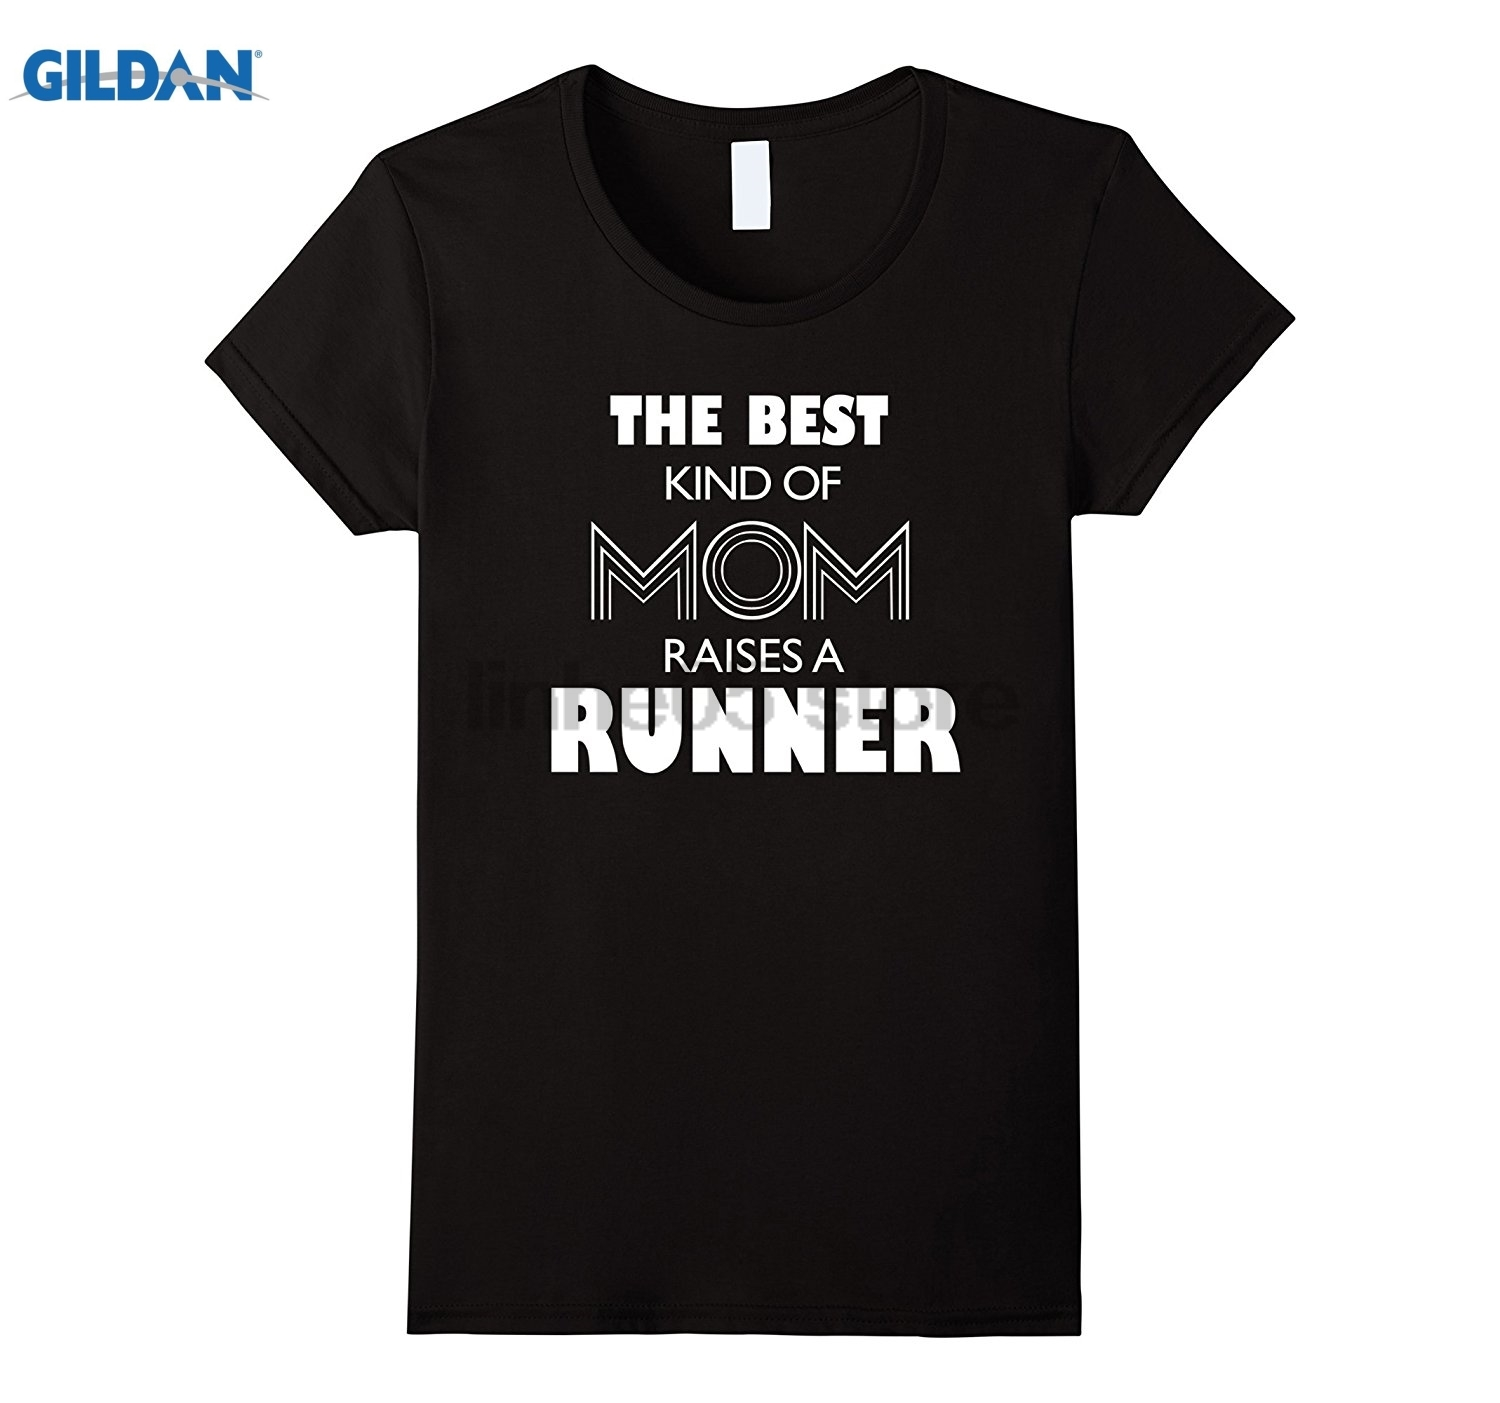 GILDAN Womens The Best Kind Of Mom Raises A Runner Tshirt Mother Day Gifts Womens T-shirt